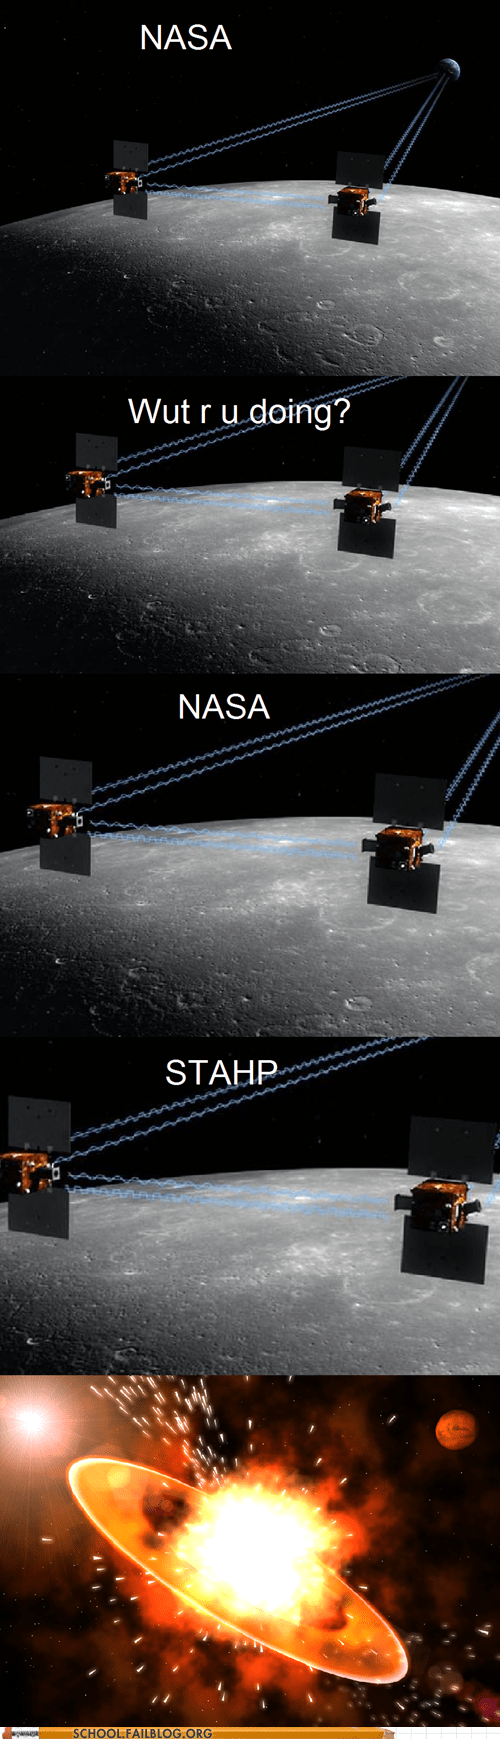 nasa stahp the moon Astronomy science space - 6879591936